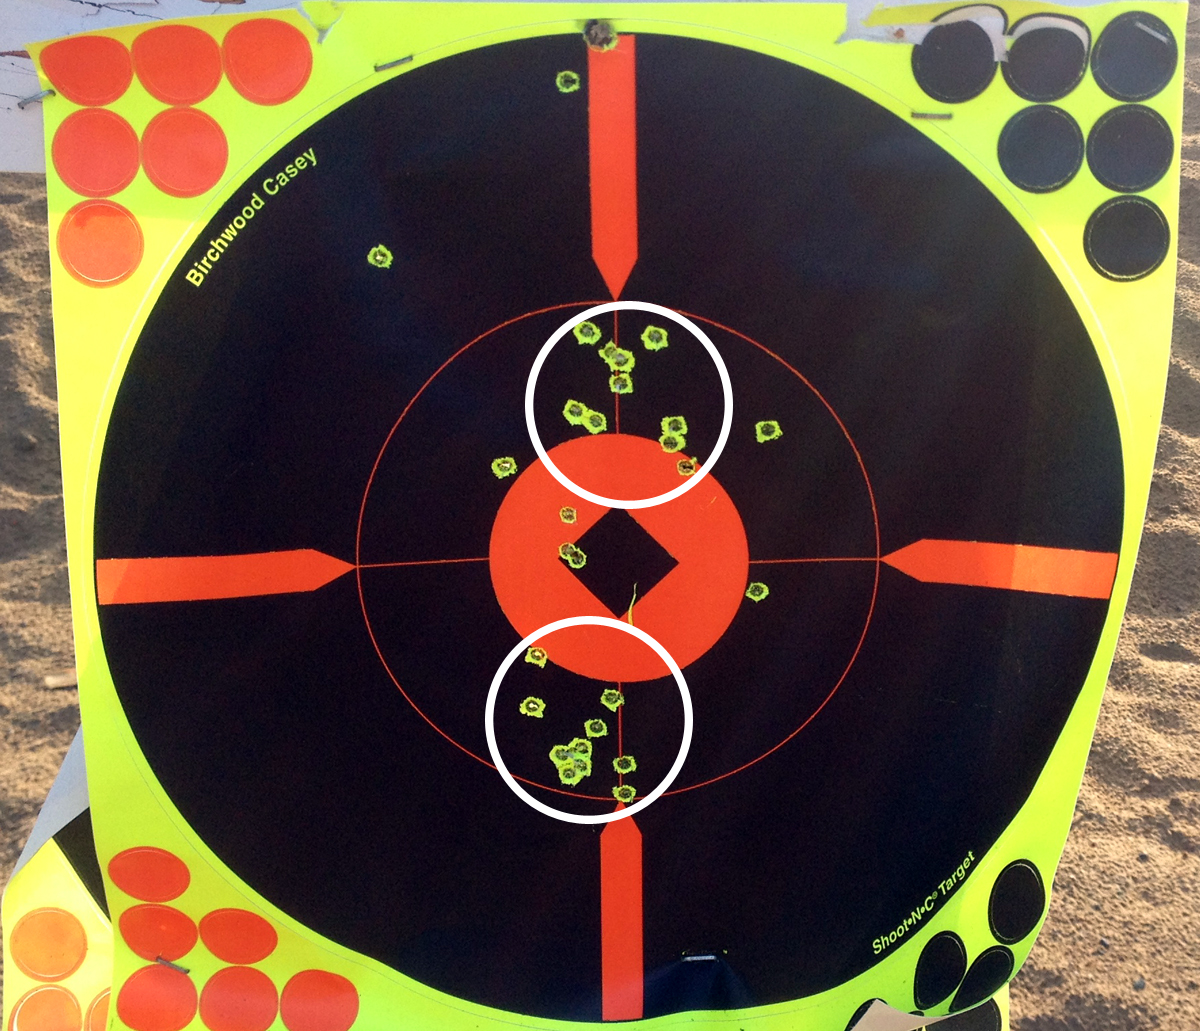 100-Yard Target Shot With Savage A17